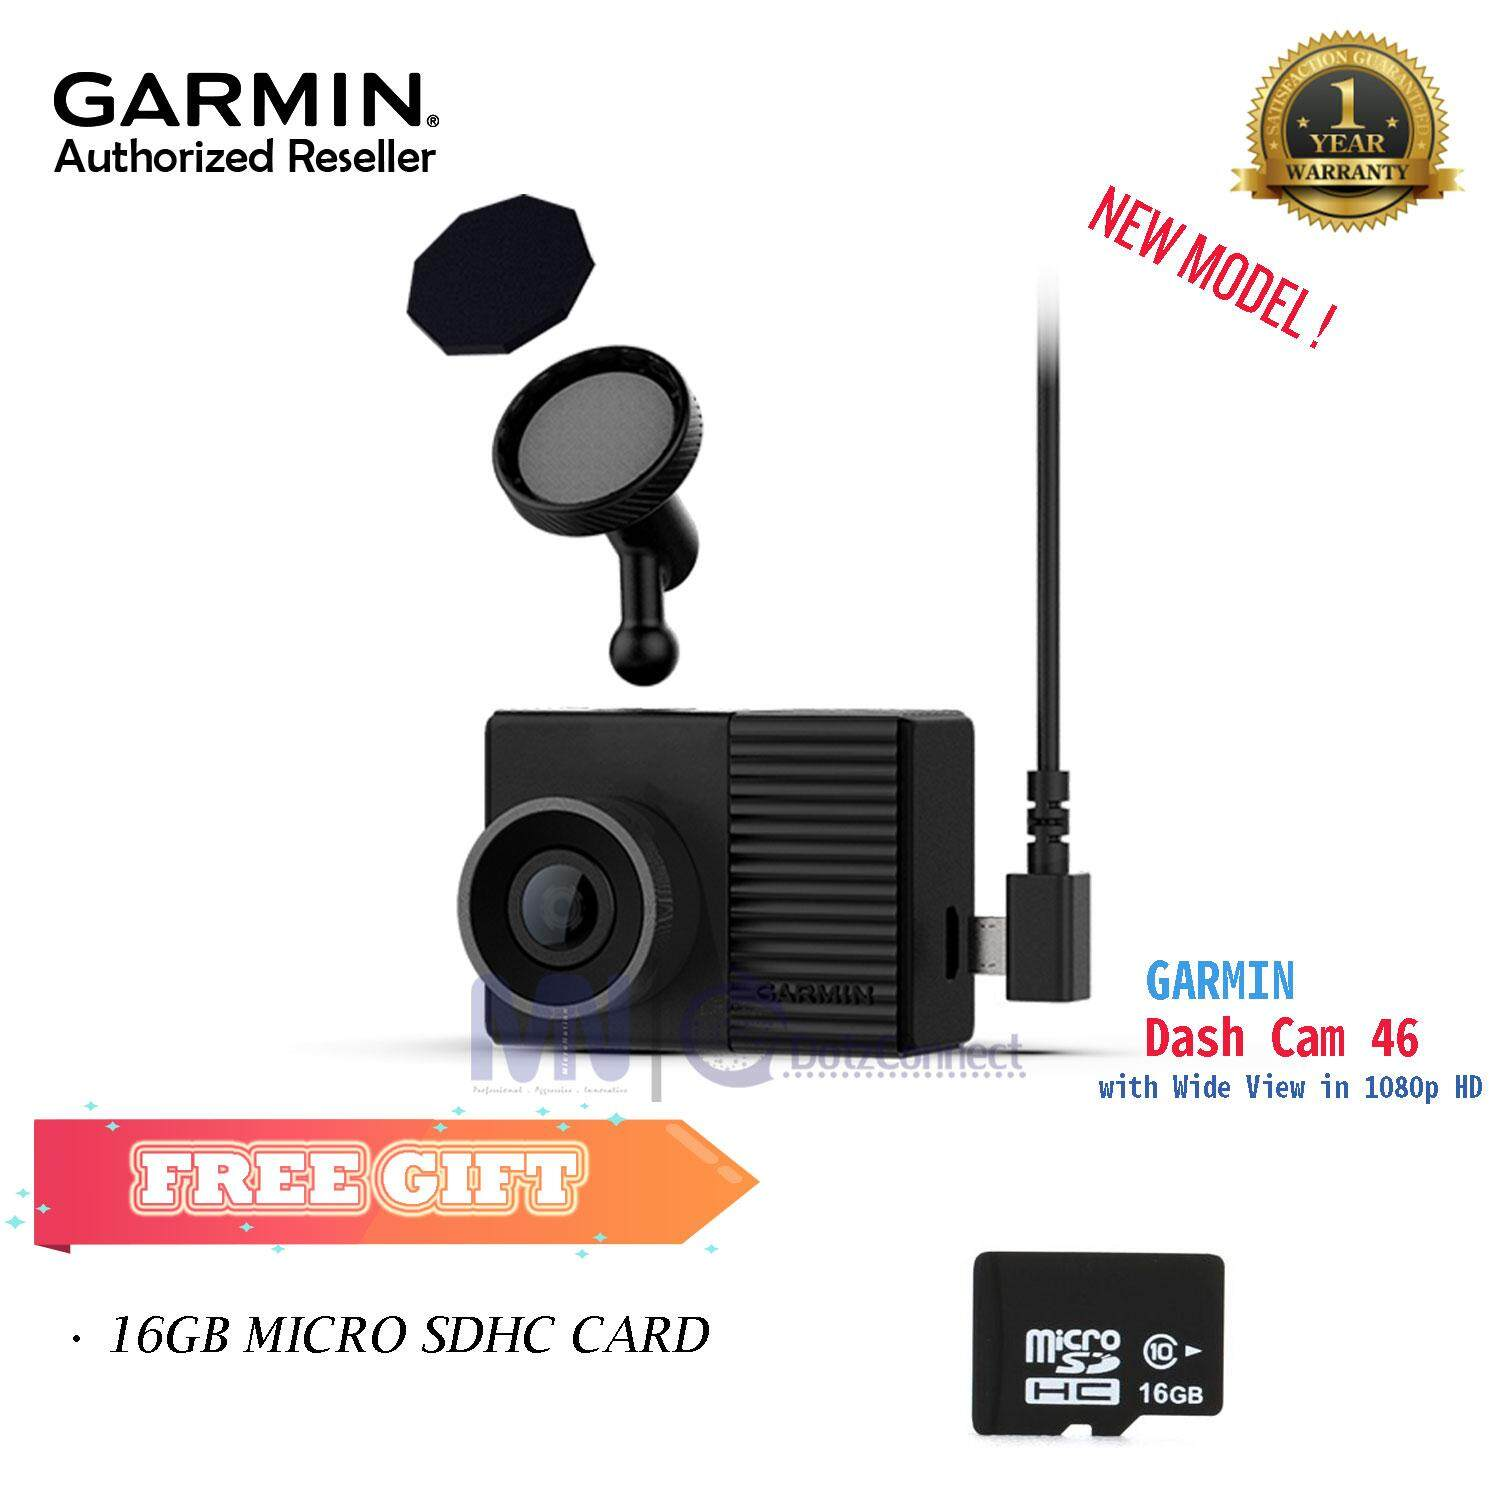 Garmin Dash Cam 46 - Compact, Discreet Dash Cam with GPS & Wide View in 1080p HD [NEW MODEL]